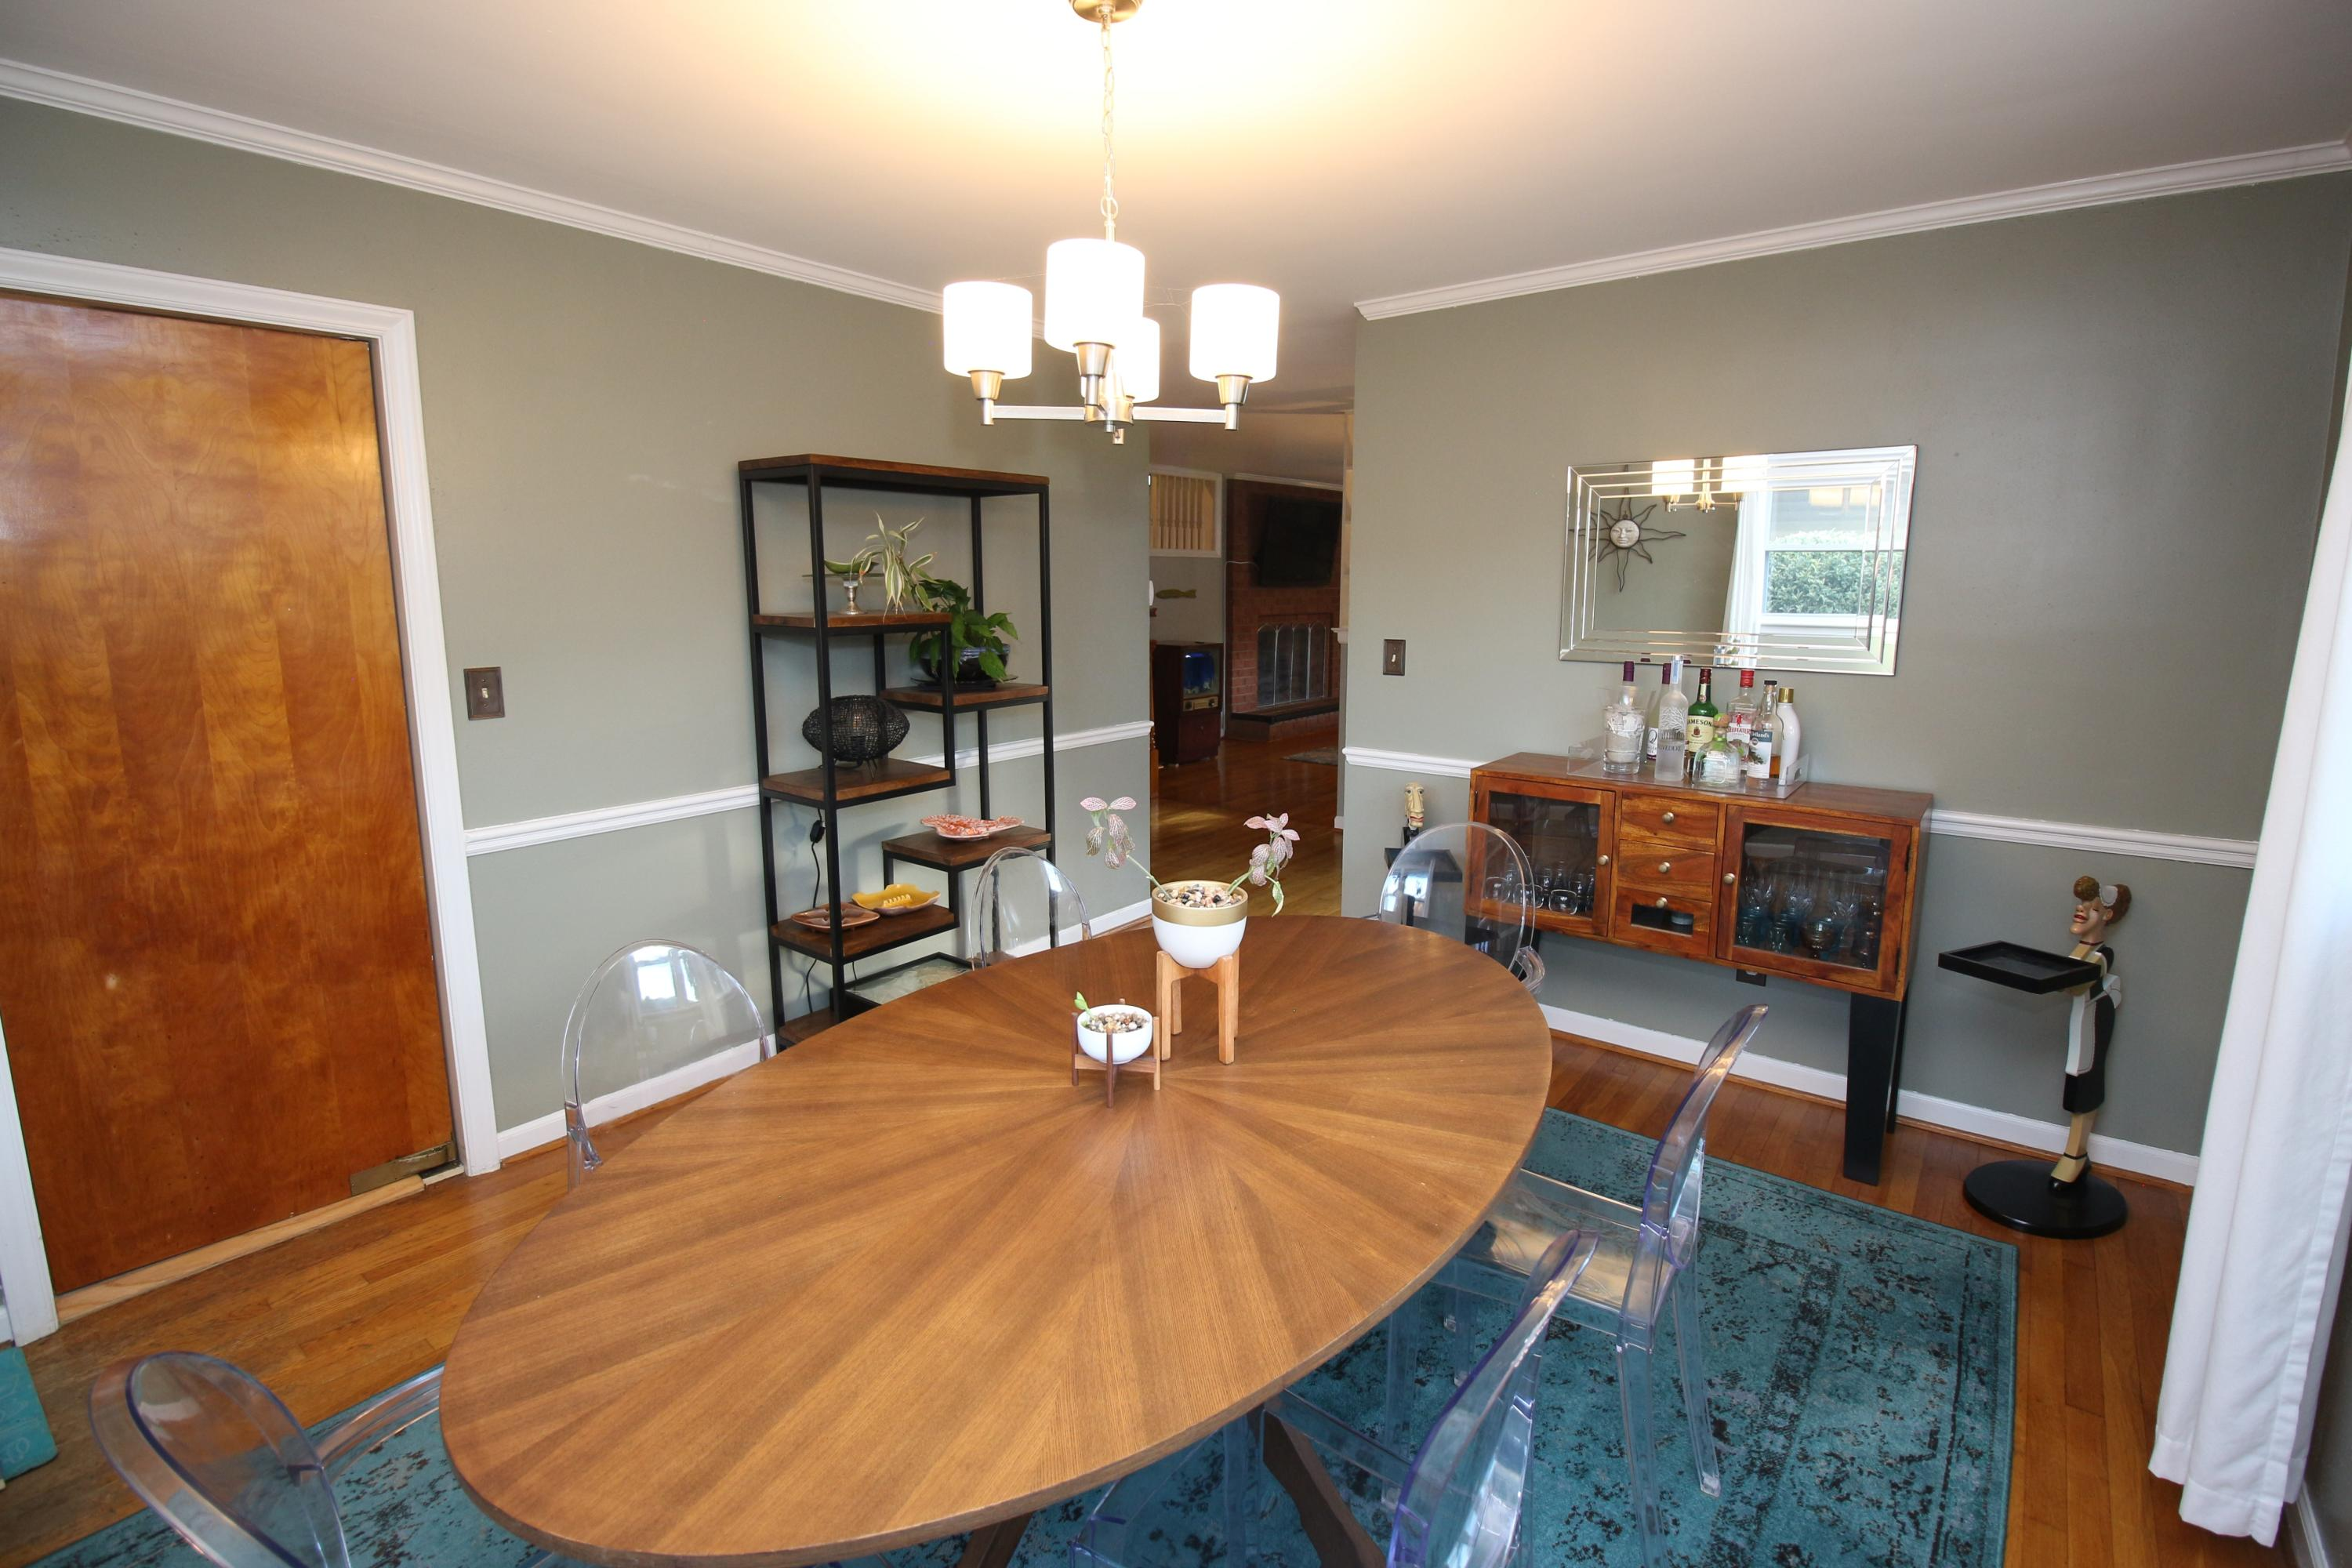 Additional photo for property listing at 1410 Narcissus St Salem, Virginia 24153 United States